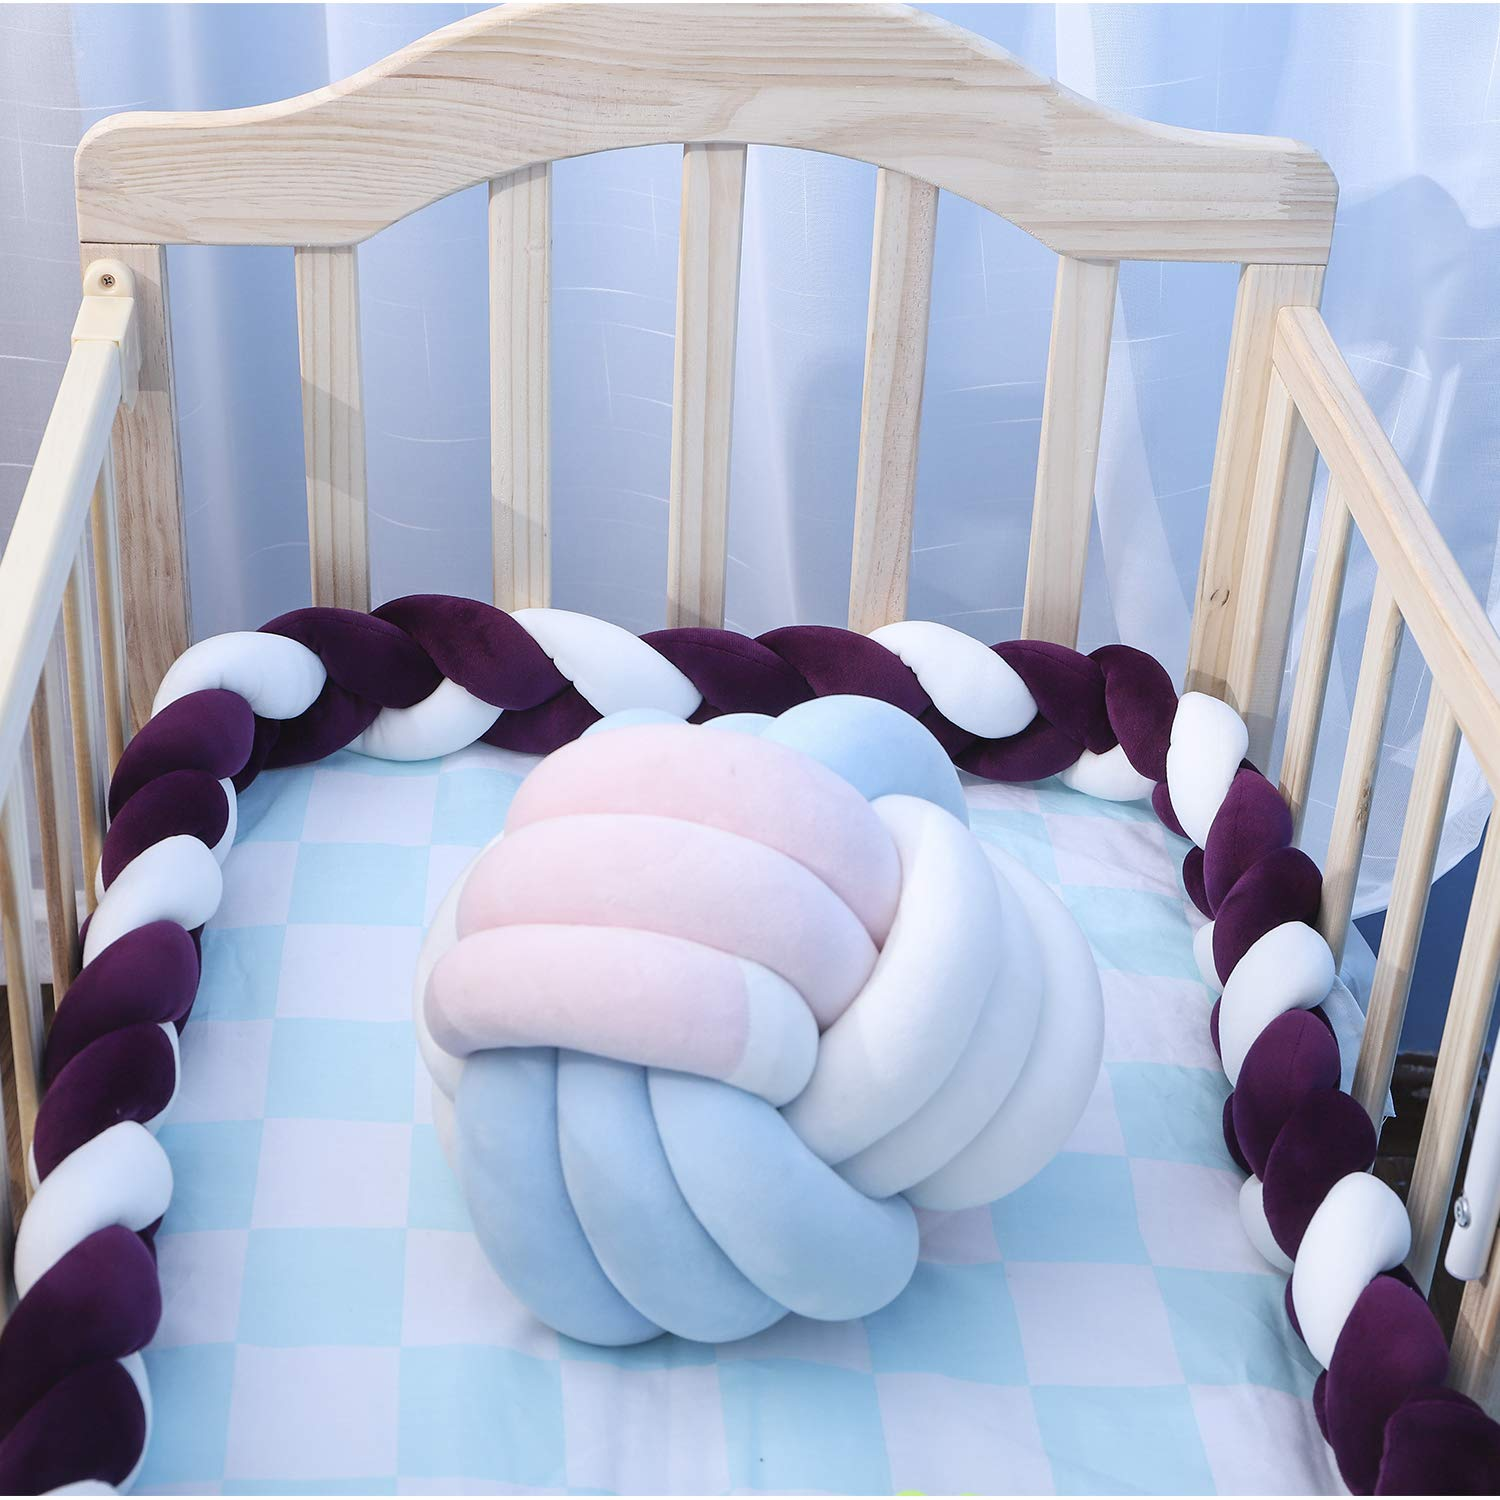 Lion Paw Crib Bed Bumper Pillow Cushion 158in Crib Sides Protector Infant Cot Rails Newborn Gift Knotted Braided Plush Nursery Cradle Decor Grey,158in